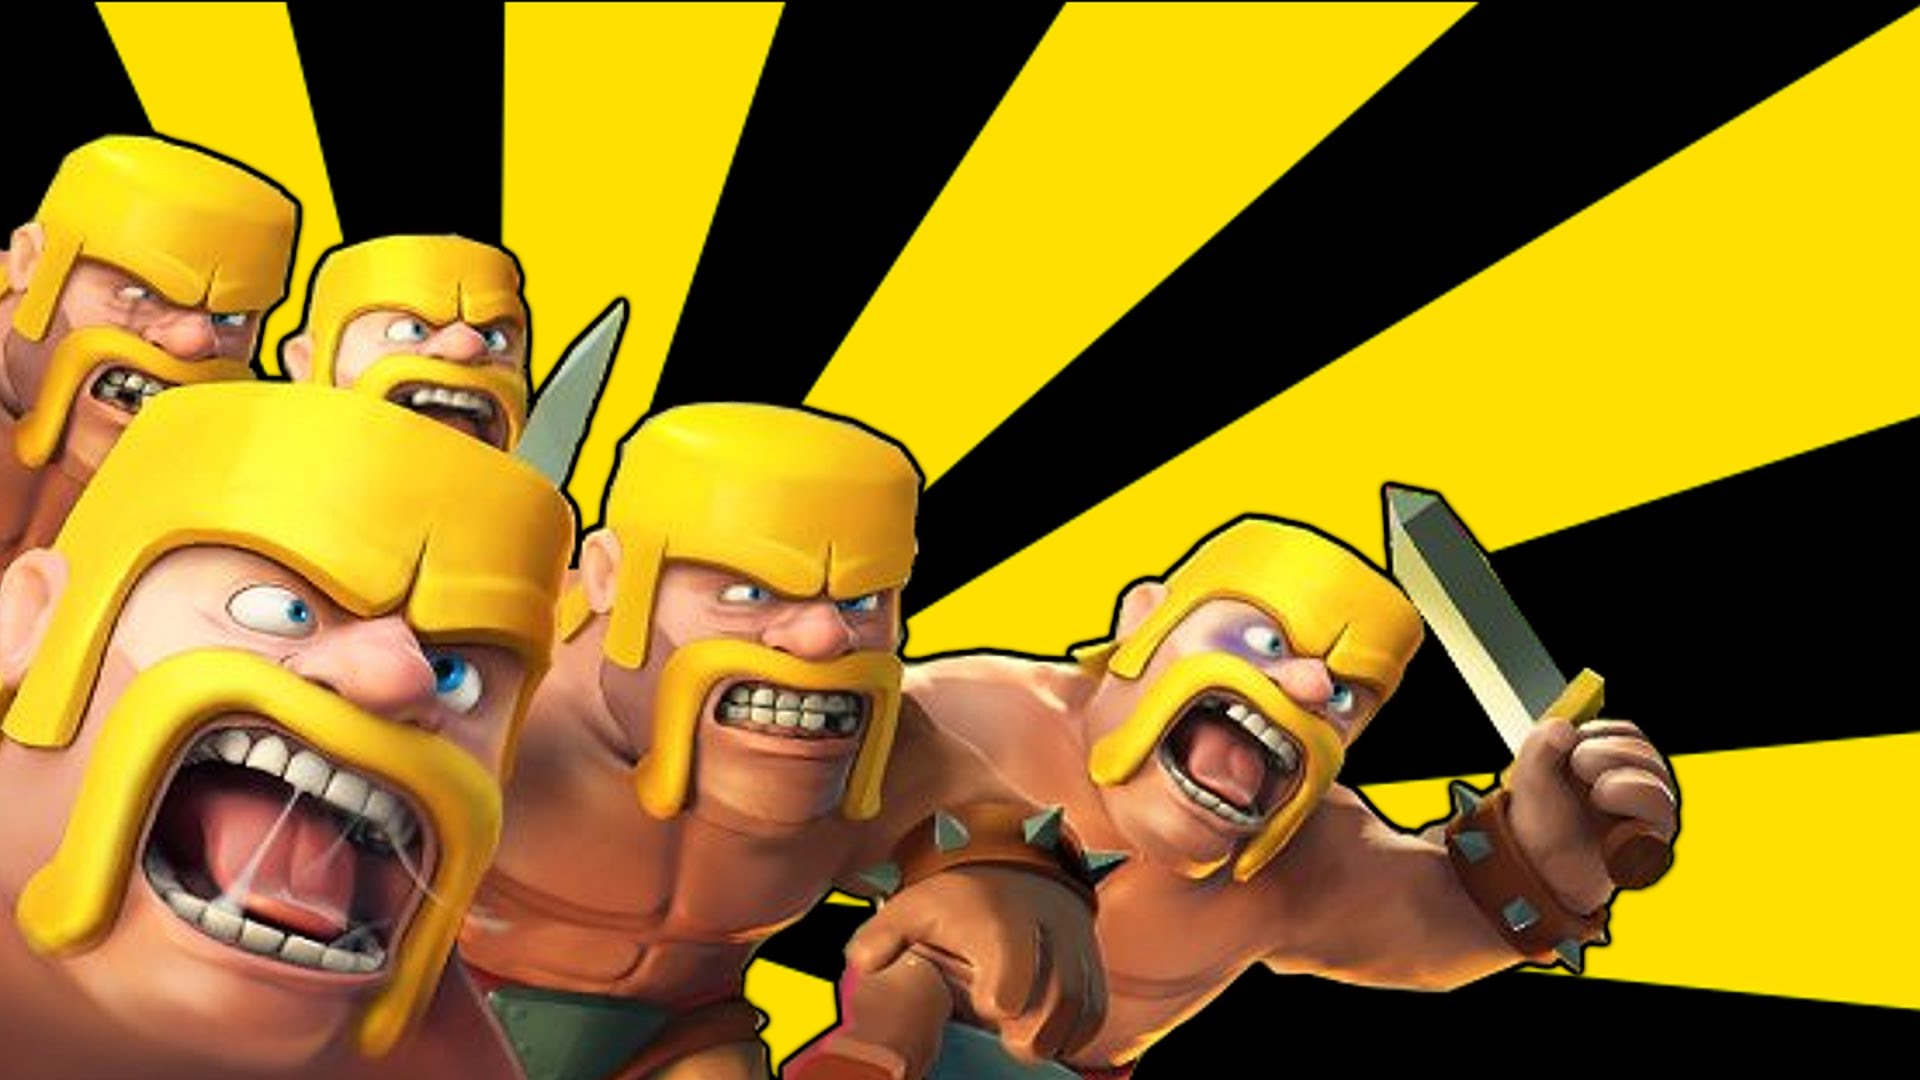 Clash of clans   BaRBariAN Troop tips and tricks Gameplay 1920x1080